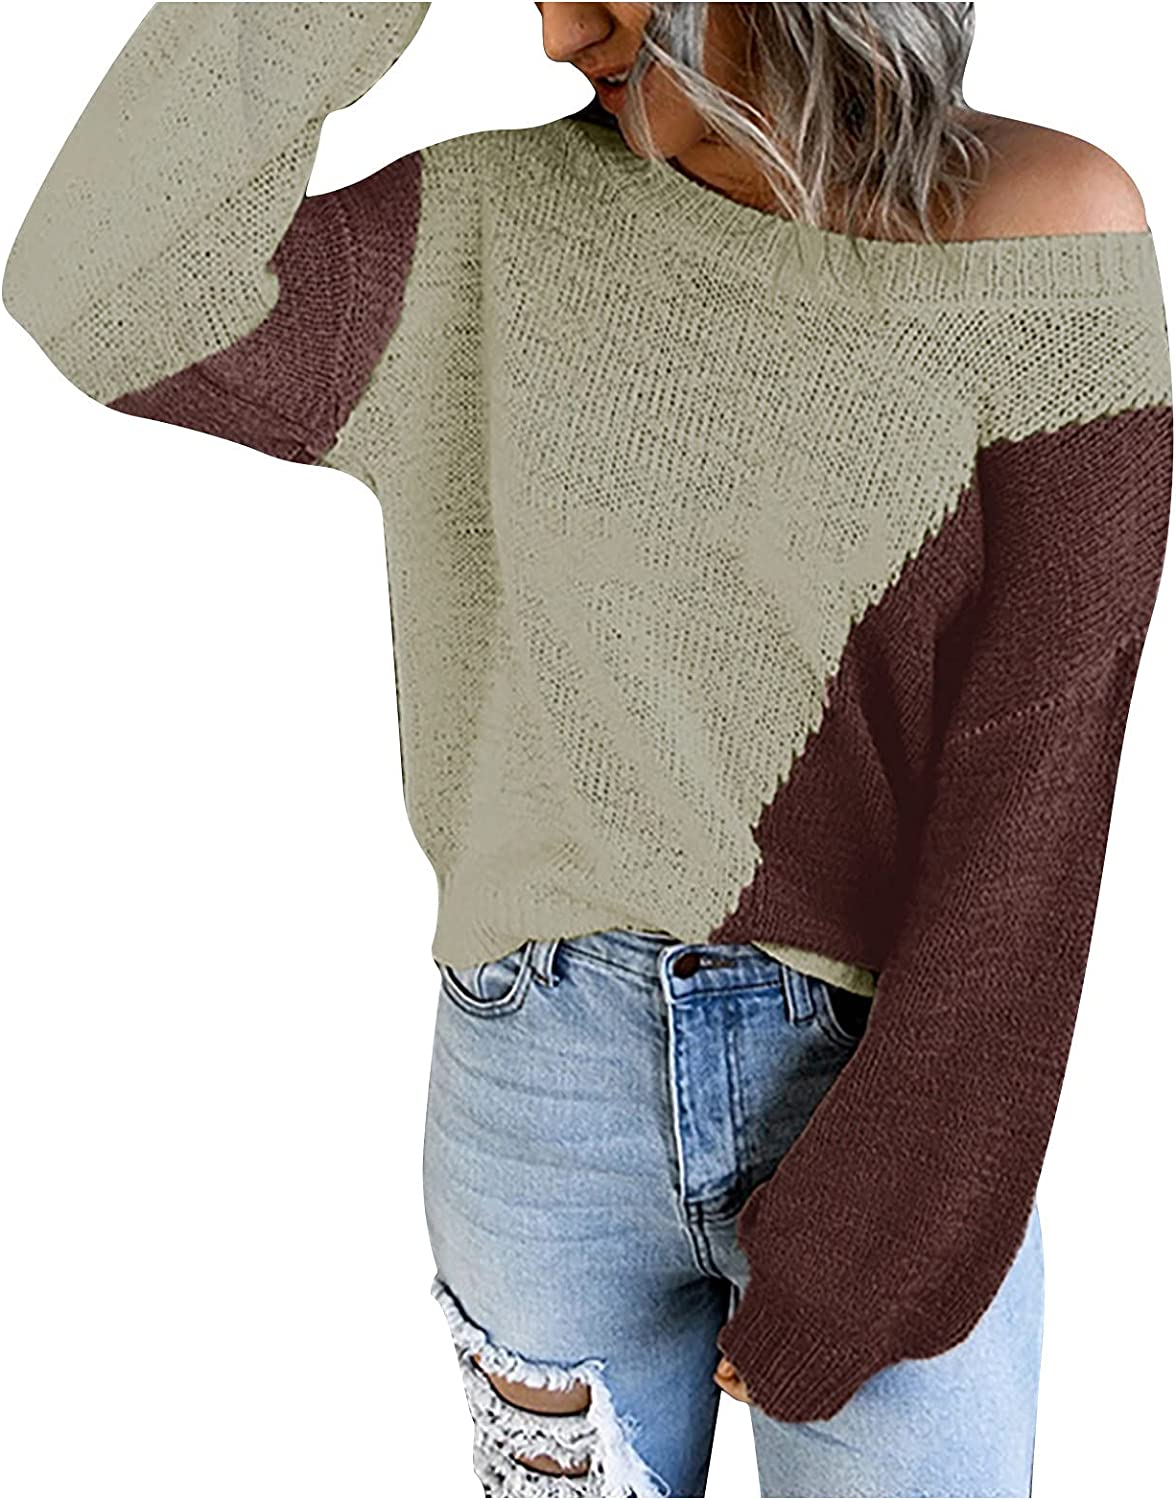 Women's Color Block Stitching Knitted Sweater Pullover Sweatshirt Long Sleeved Round Neck Off Shoulder Sweaters